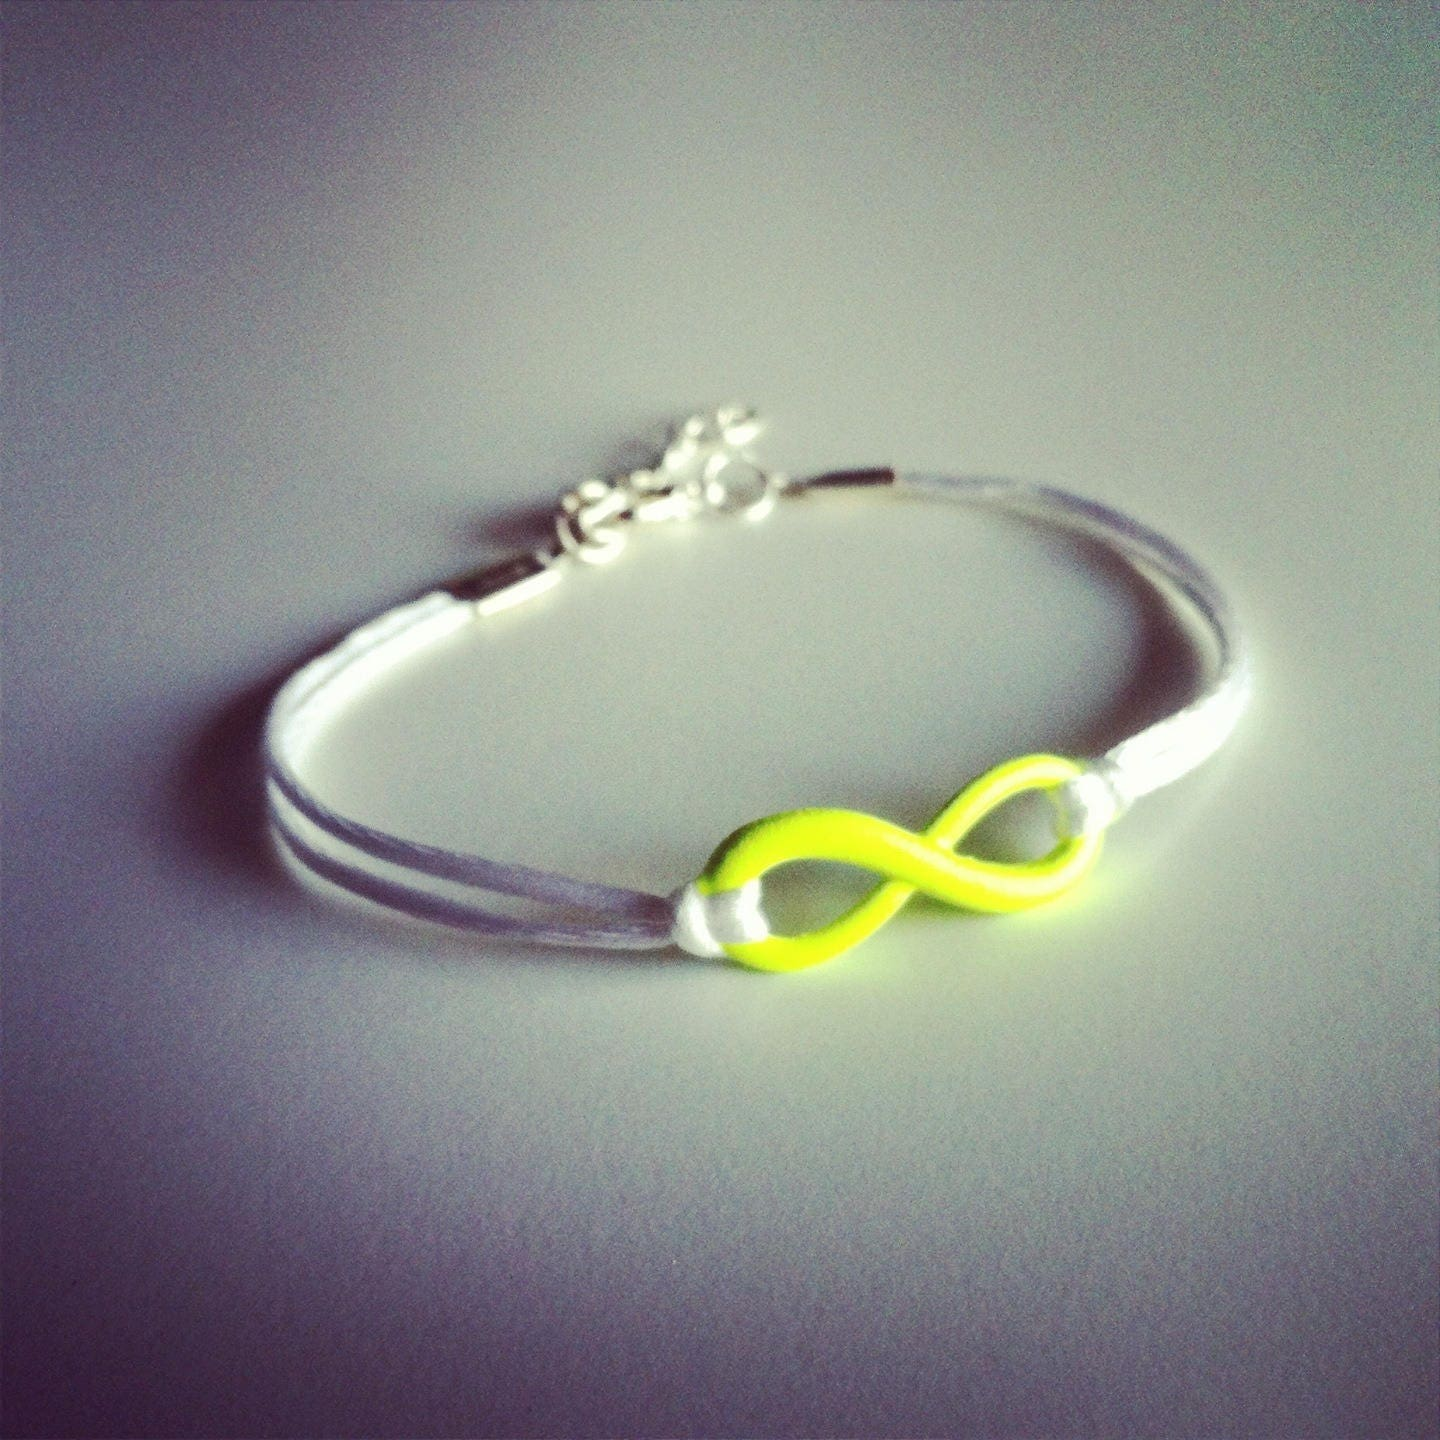 bracelet cordon blanc avec signe infini jaune fluo. Black Bedroom Furniture Sets. Home Design Ideas